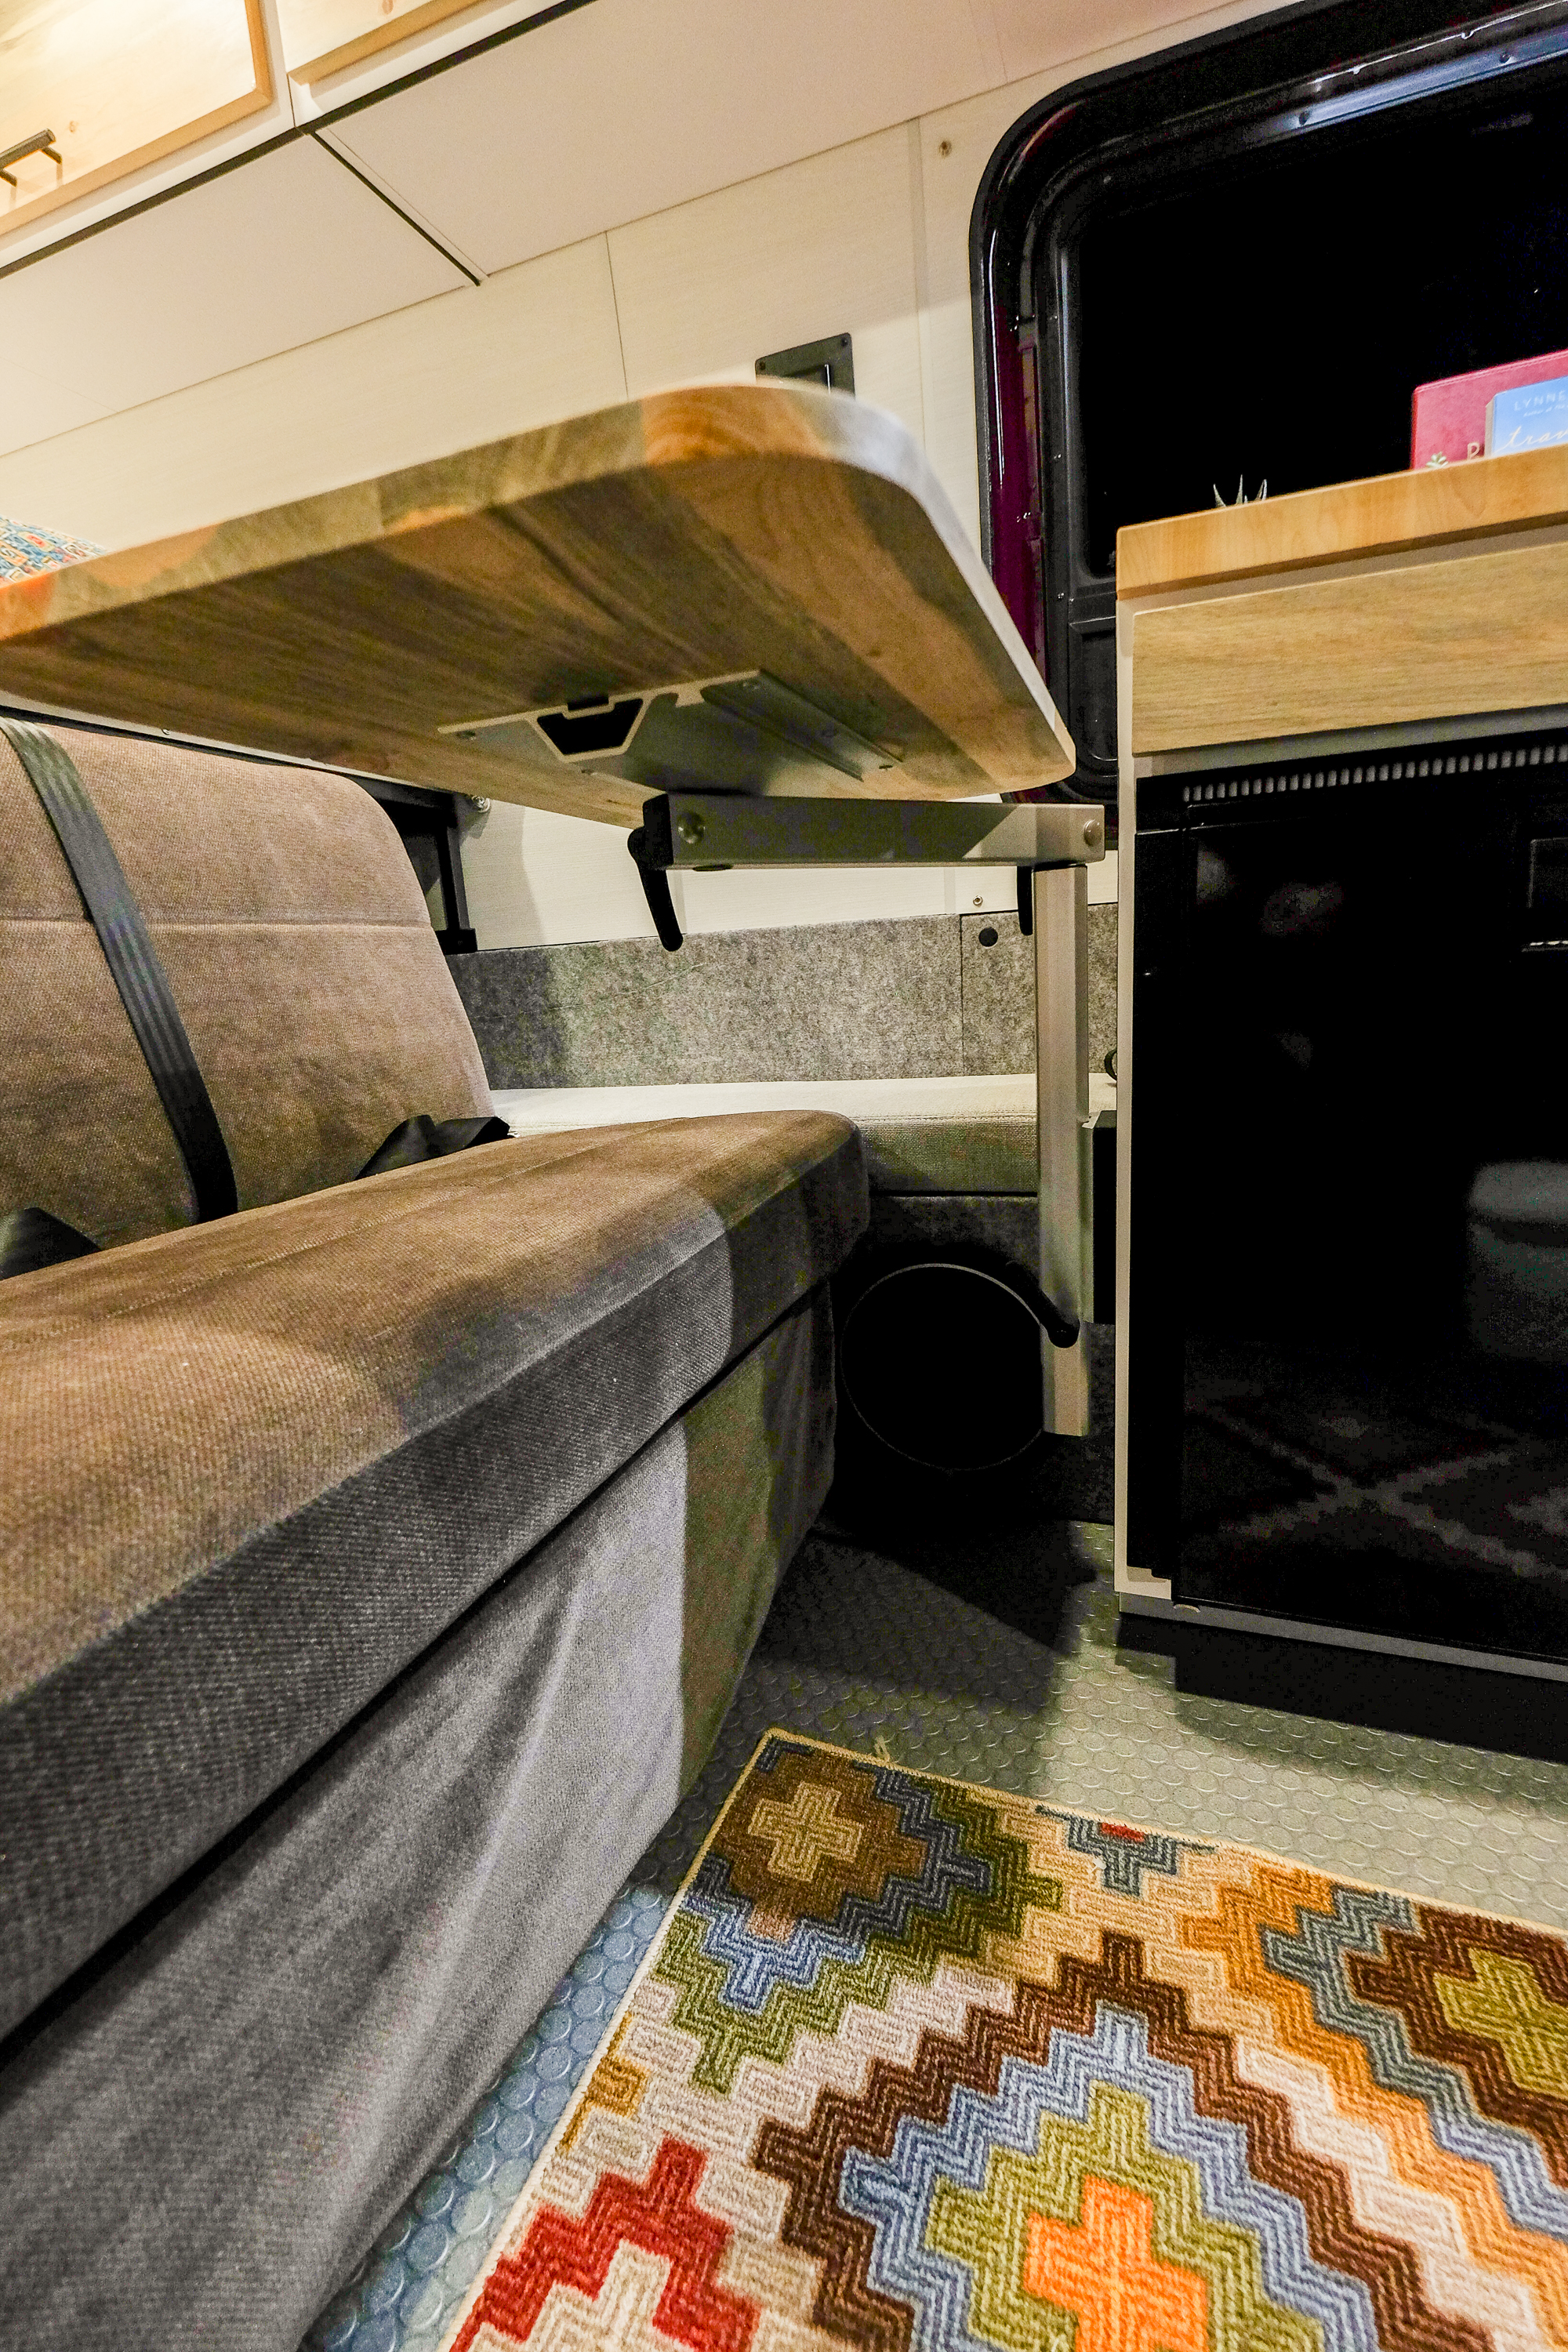 When not in use, the table leg and top can be collapsed, and conveniently tucked away.